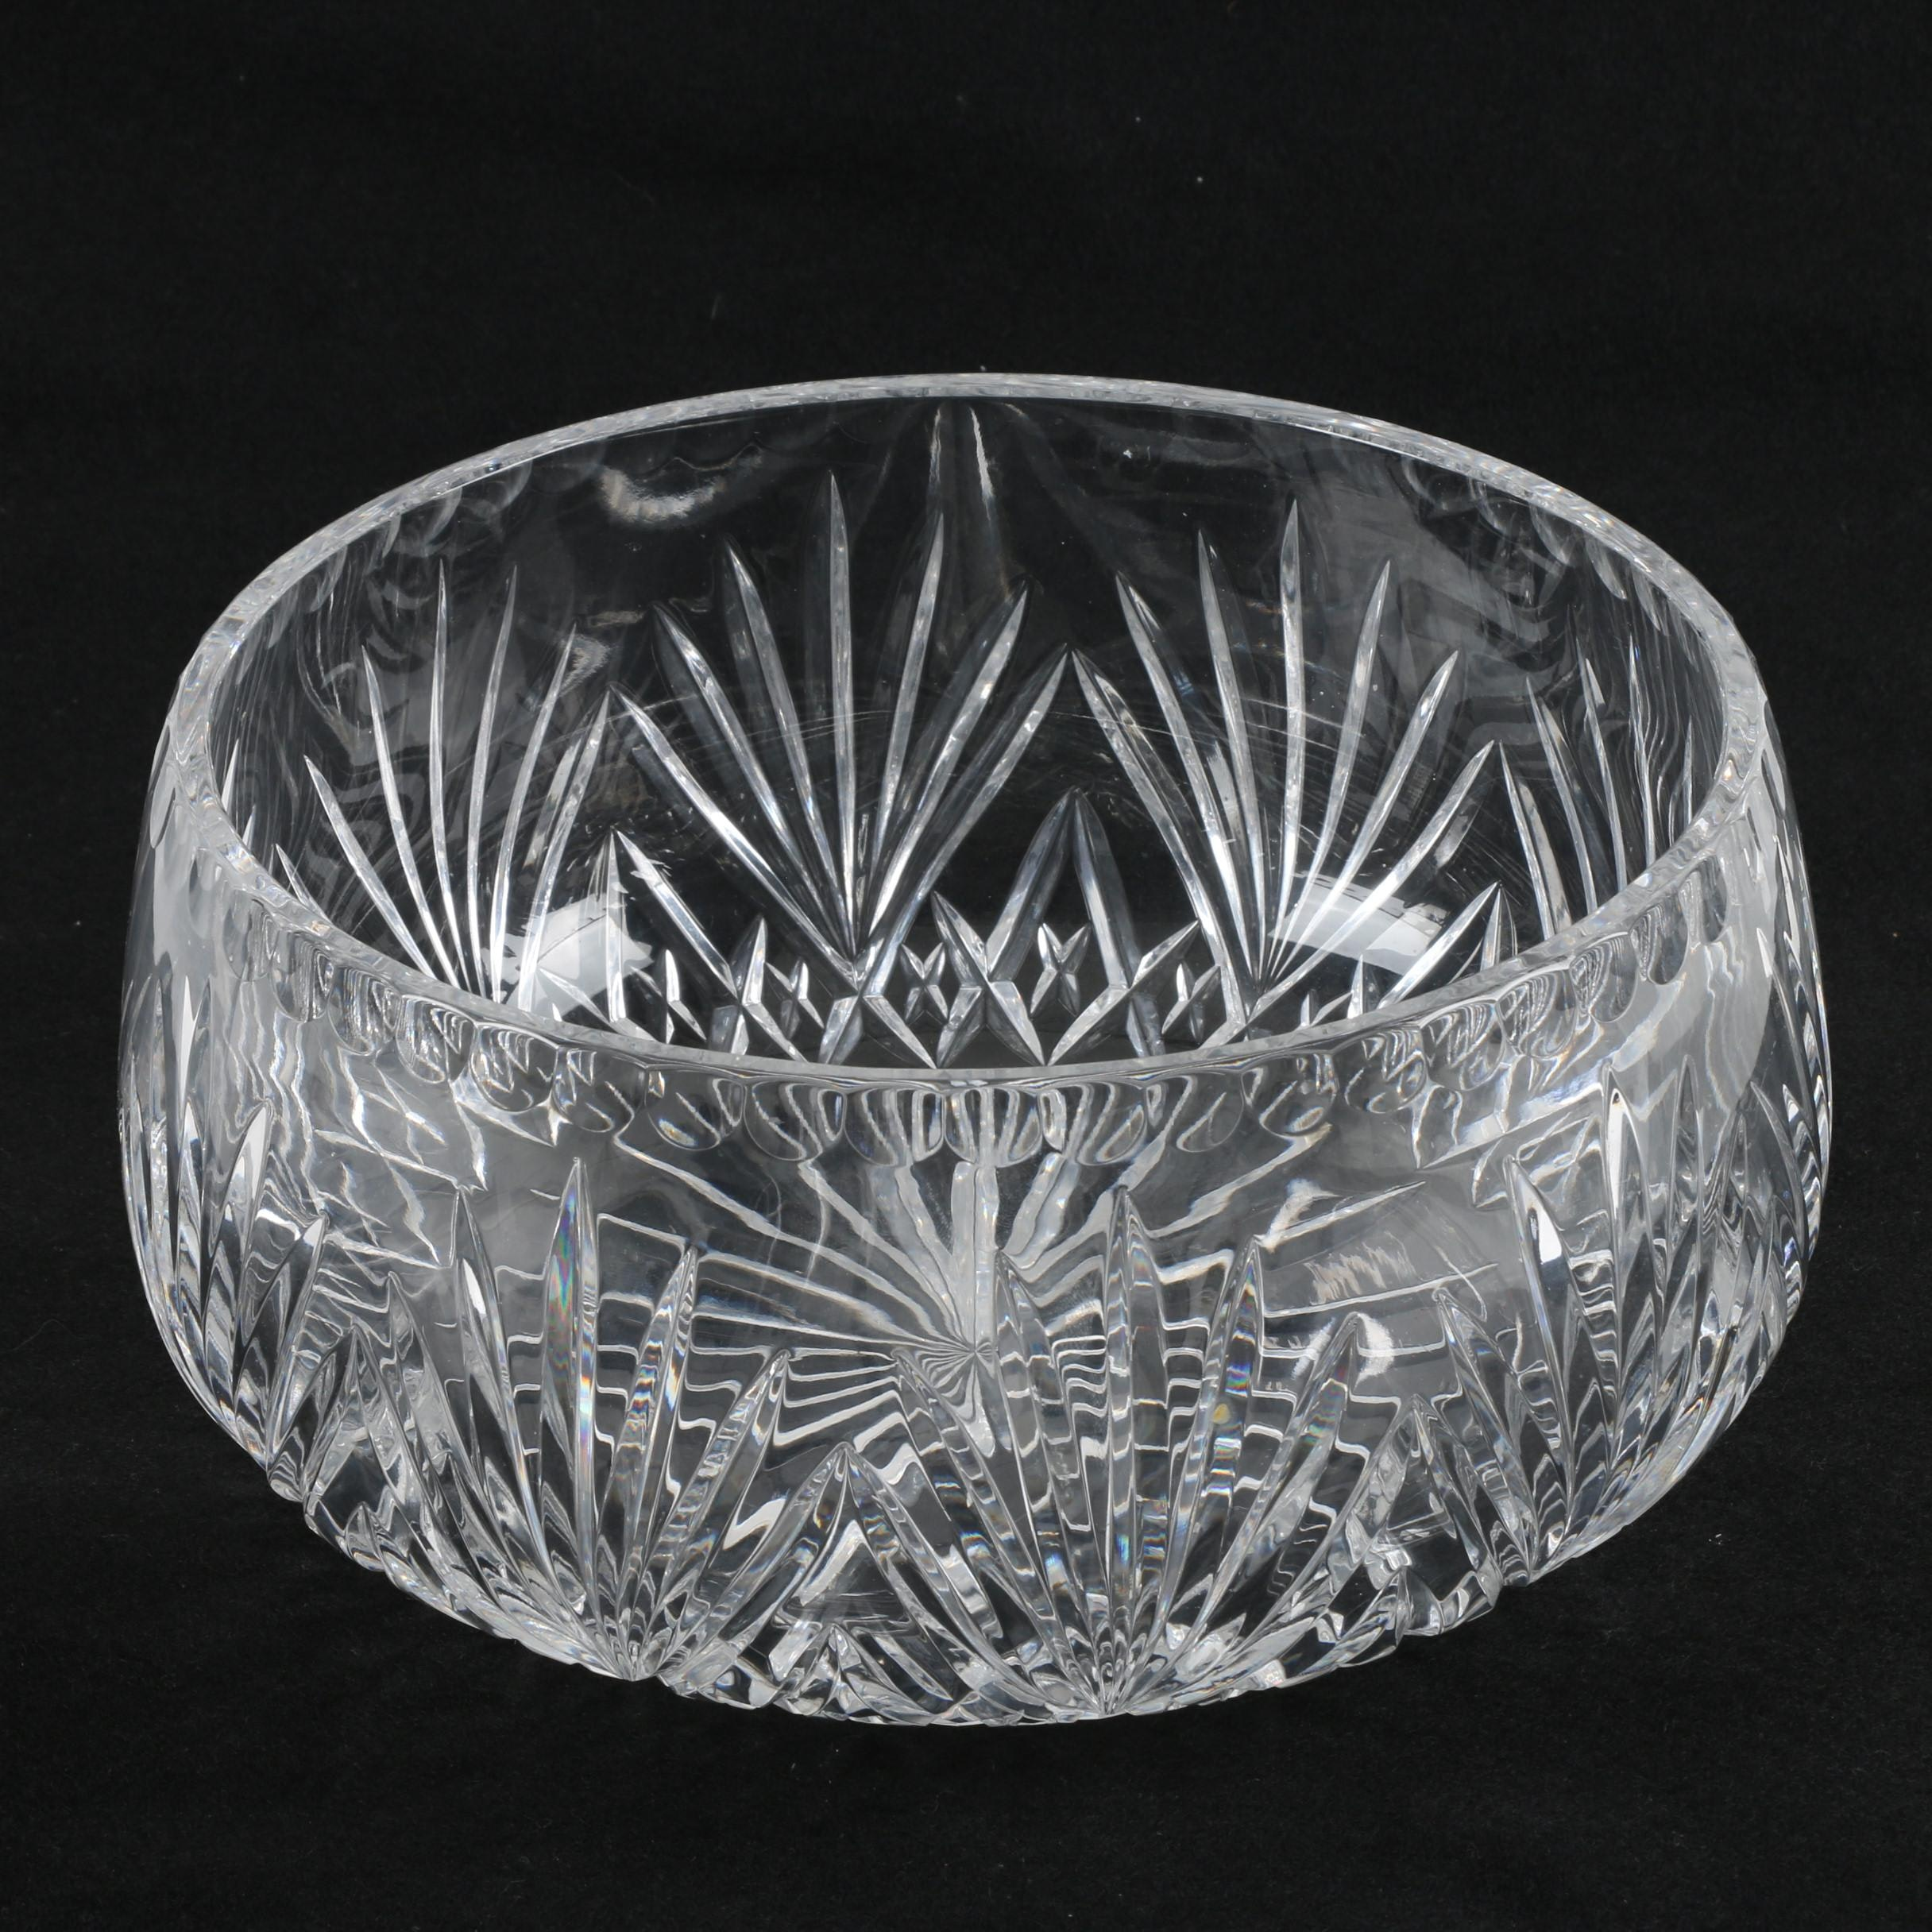 Floral and Star Crystal Bowl